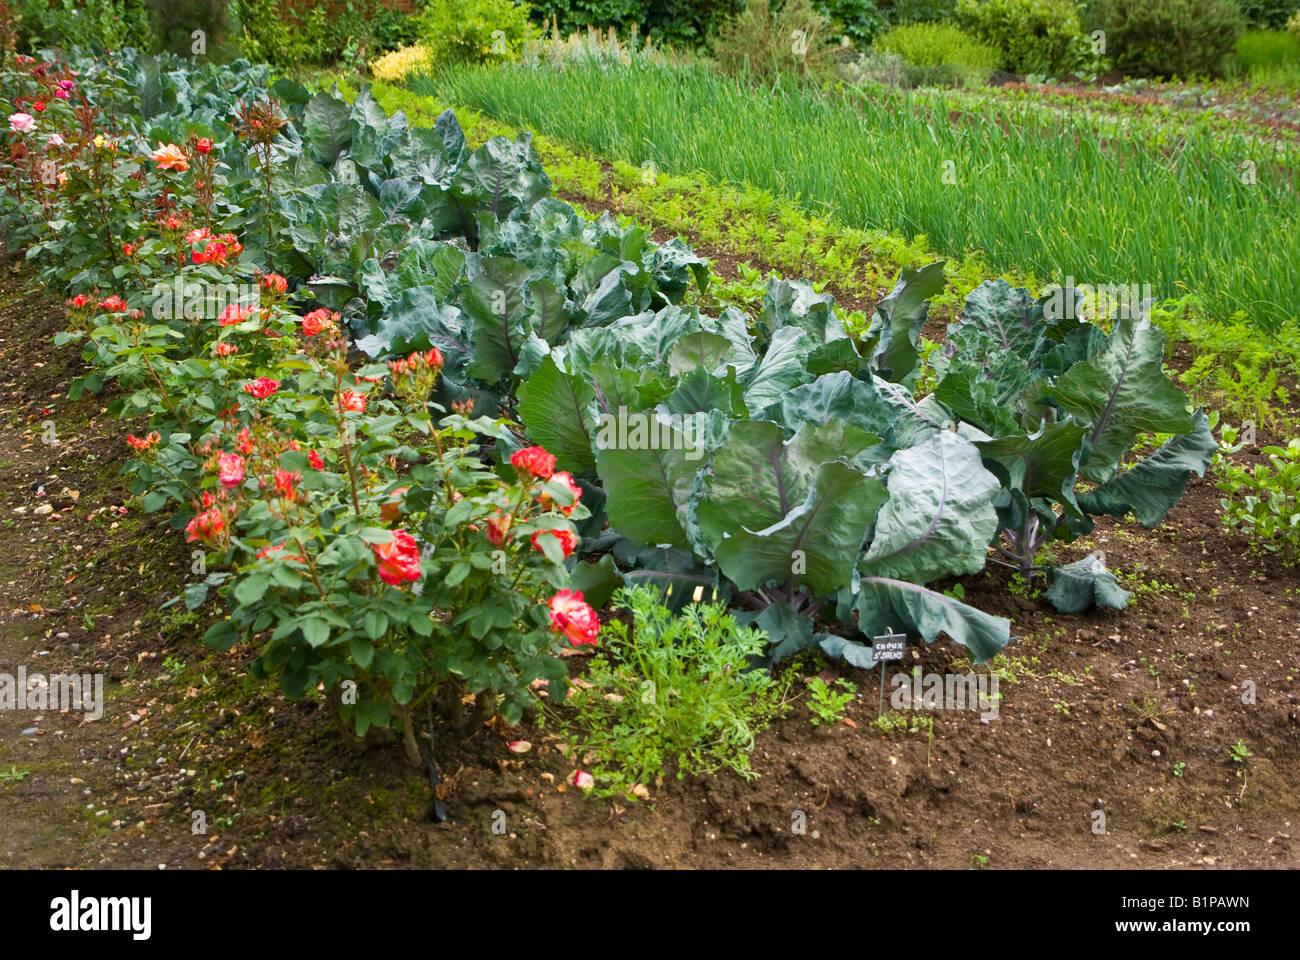 Rose bushes and rows of fresh vegetables in the garden at Chateau de Miromesnil in Normandy France EU - Stock Image